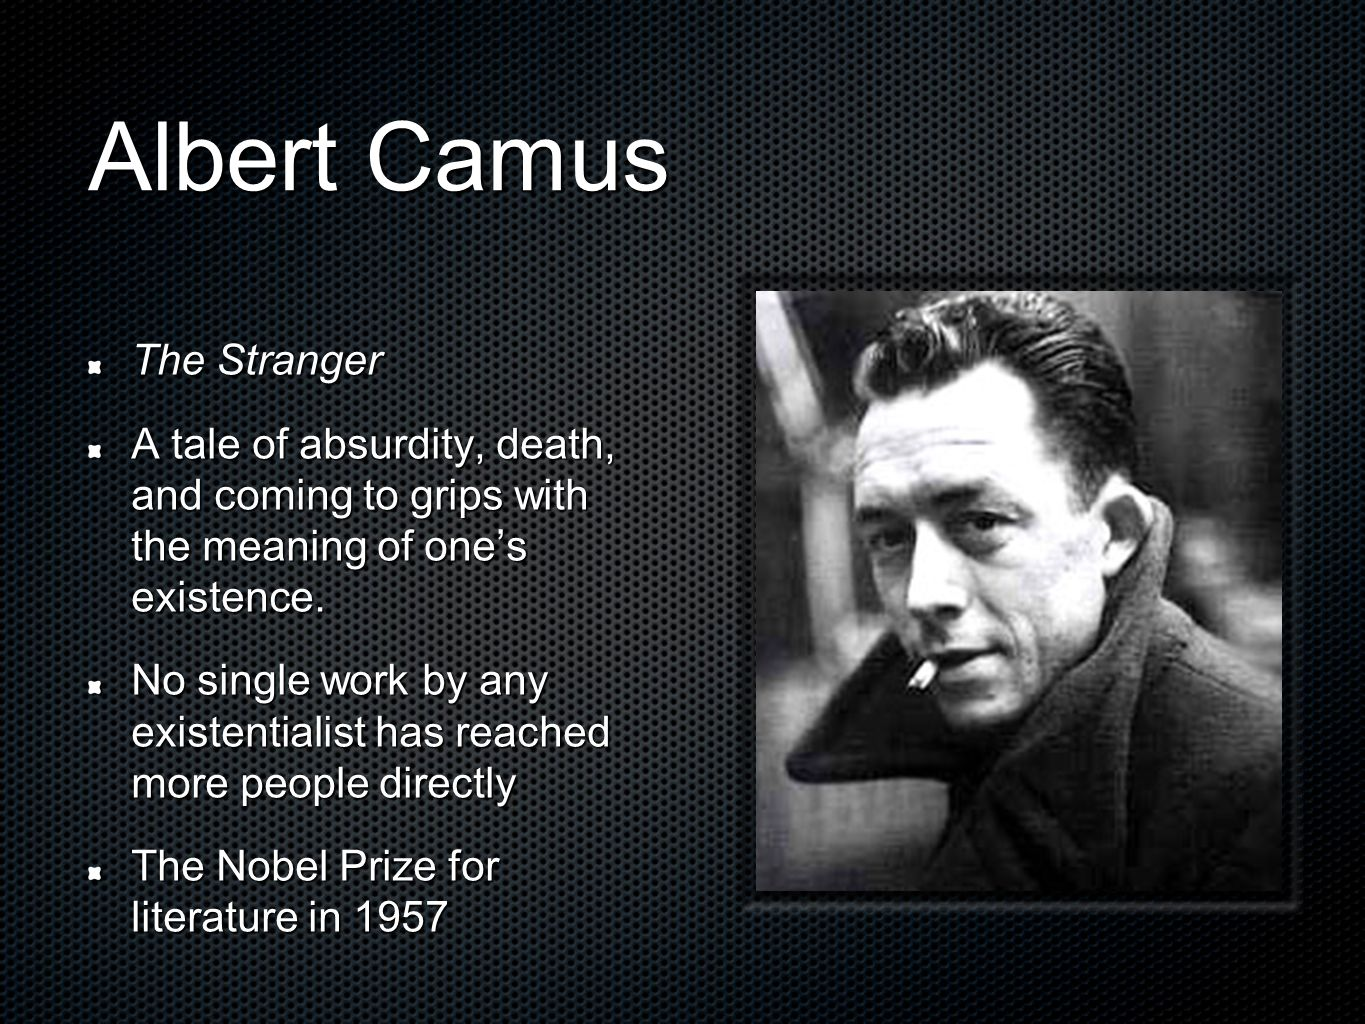 albert camus the stranger existentialism and absurdism essay Albert camus' the myth of sisyphus albert camus' essay, 'the myth of sisyphus' is an 'the stranger' and the absurd albert existentialism in albert camus' the.